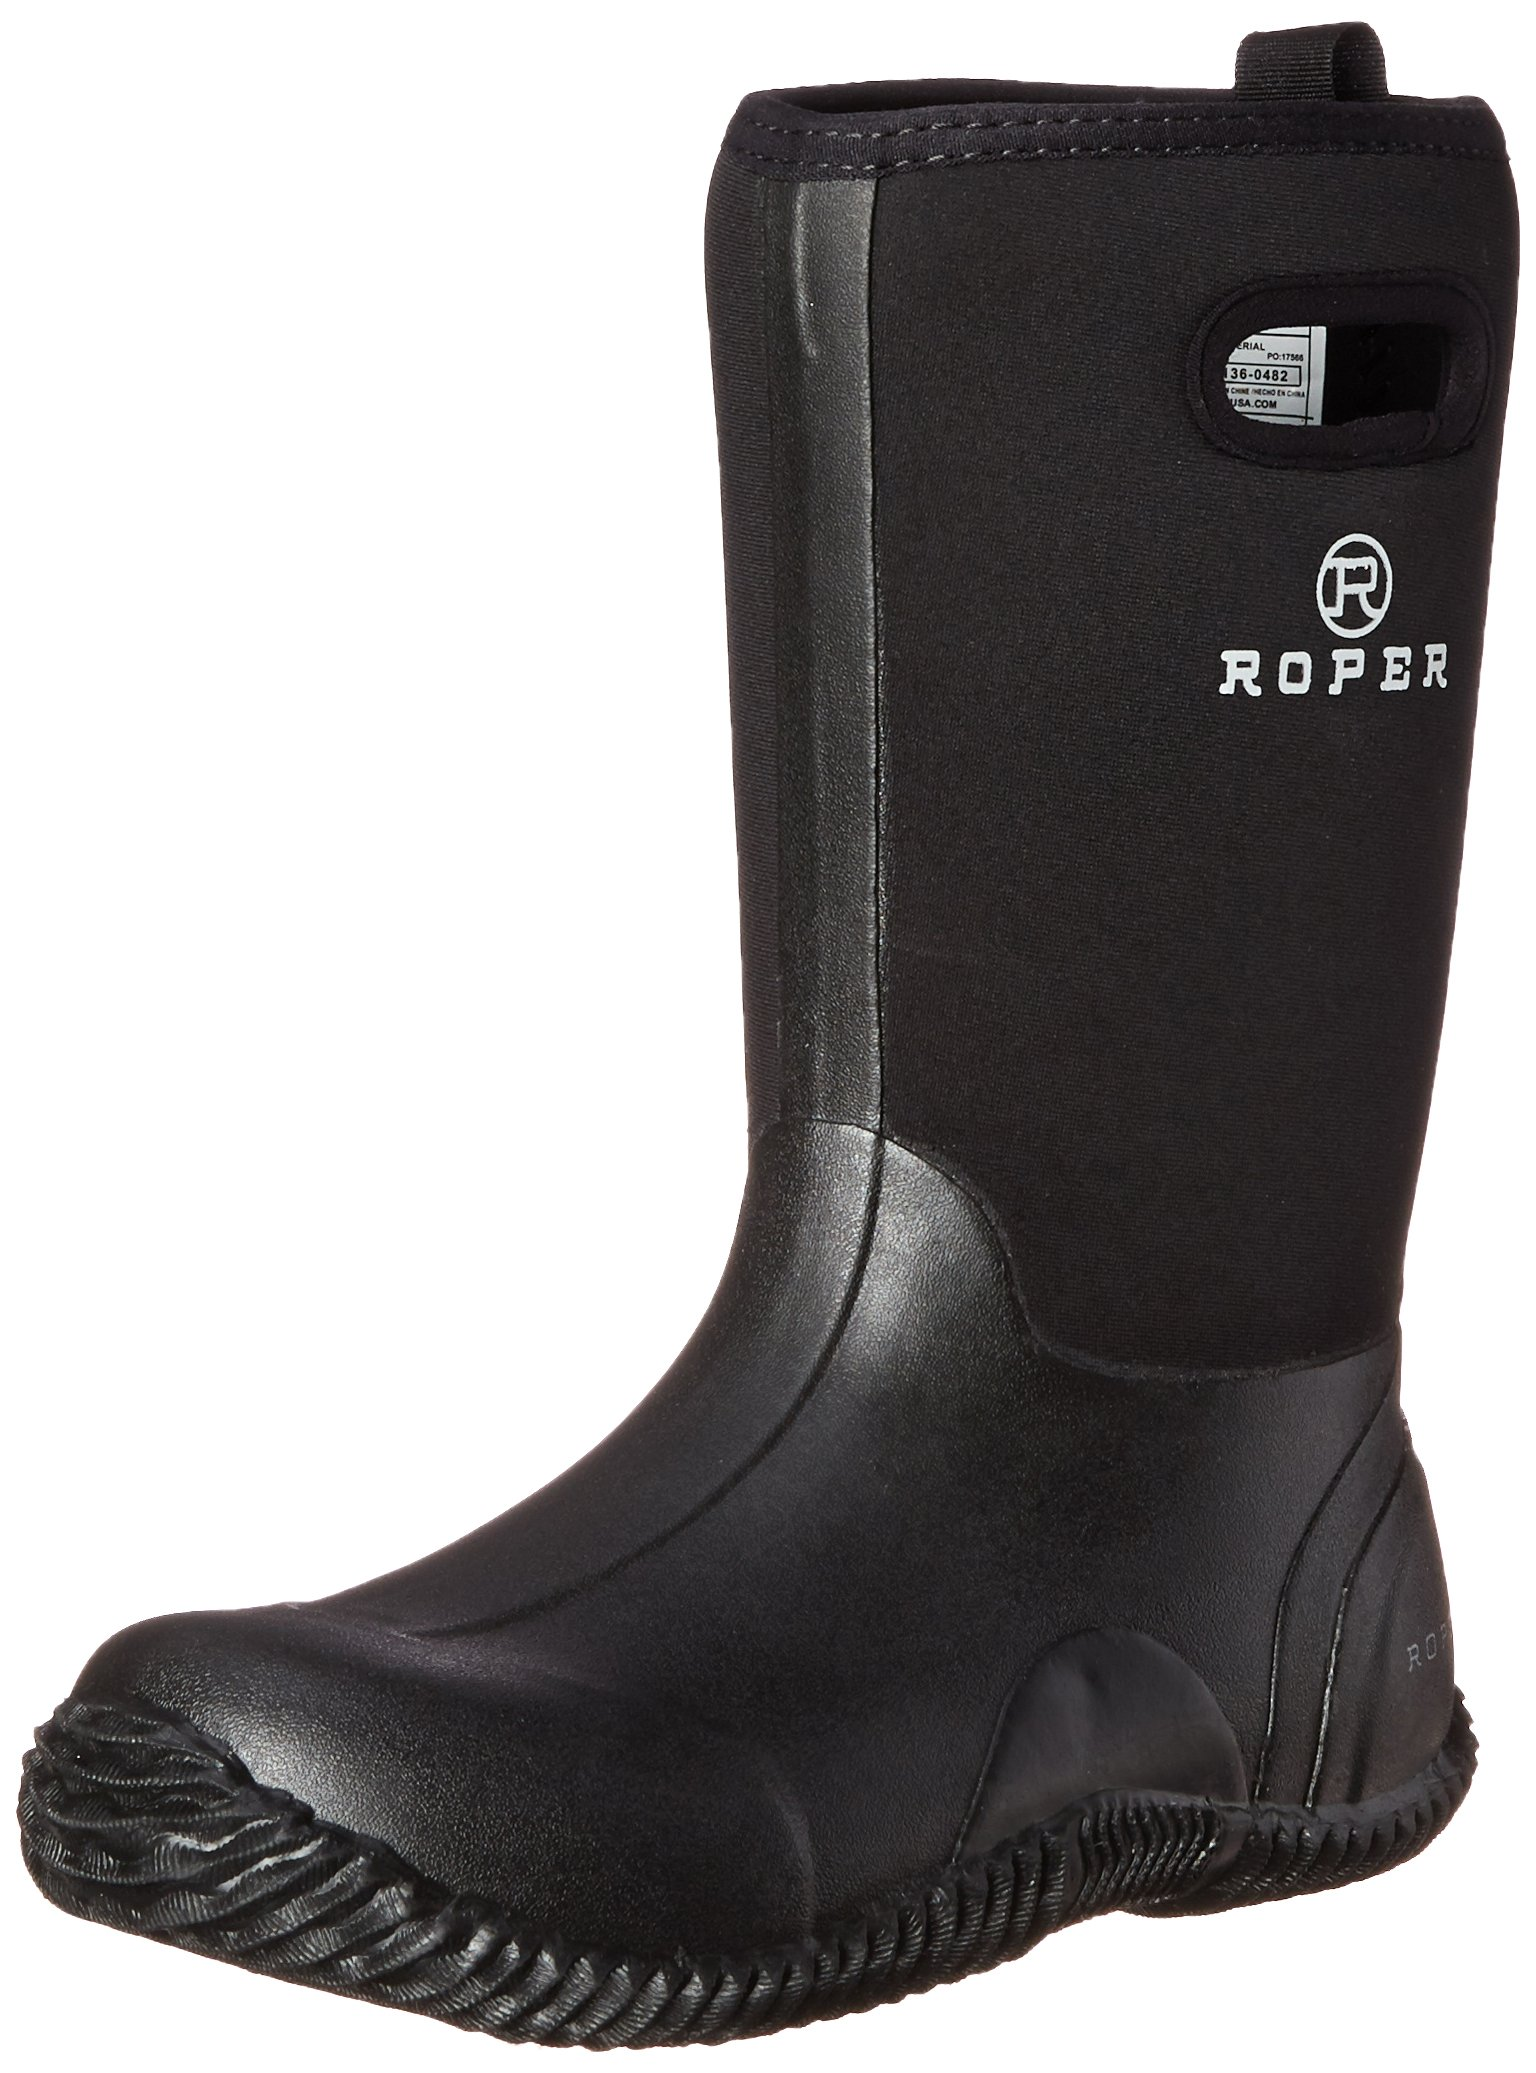 Roper Barnyard Rubber Barn Yard Chore Boot (Toddler/Little Kid/Big Kid), Black, 7 M US Big Kid